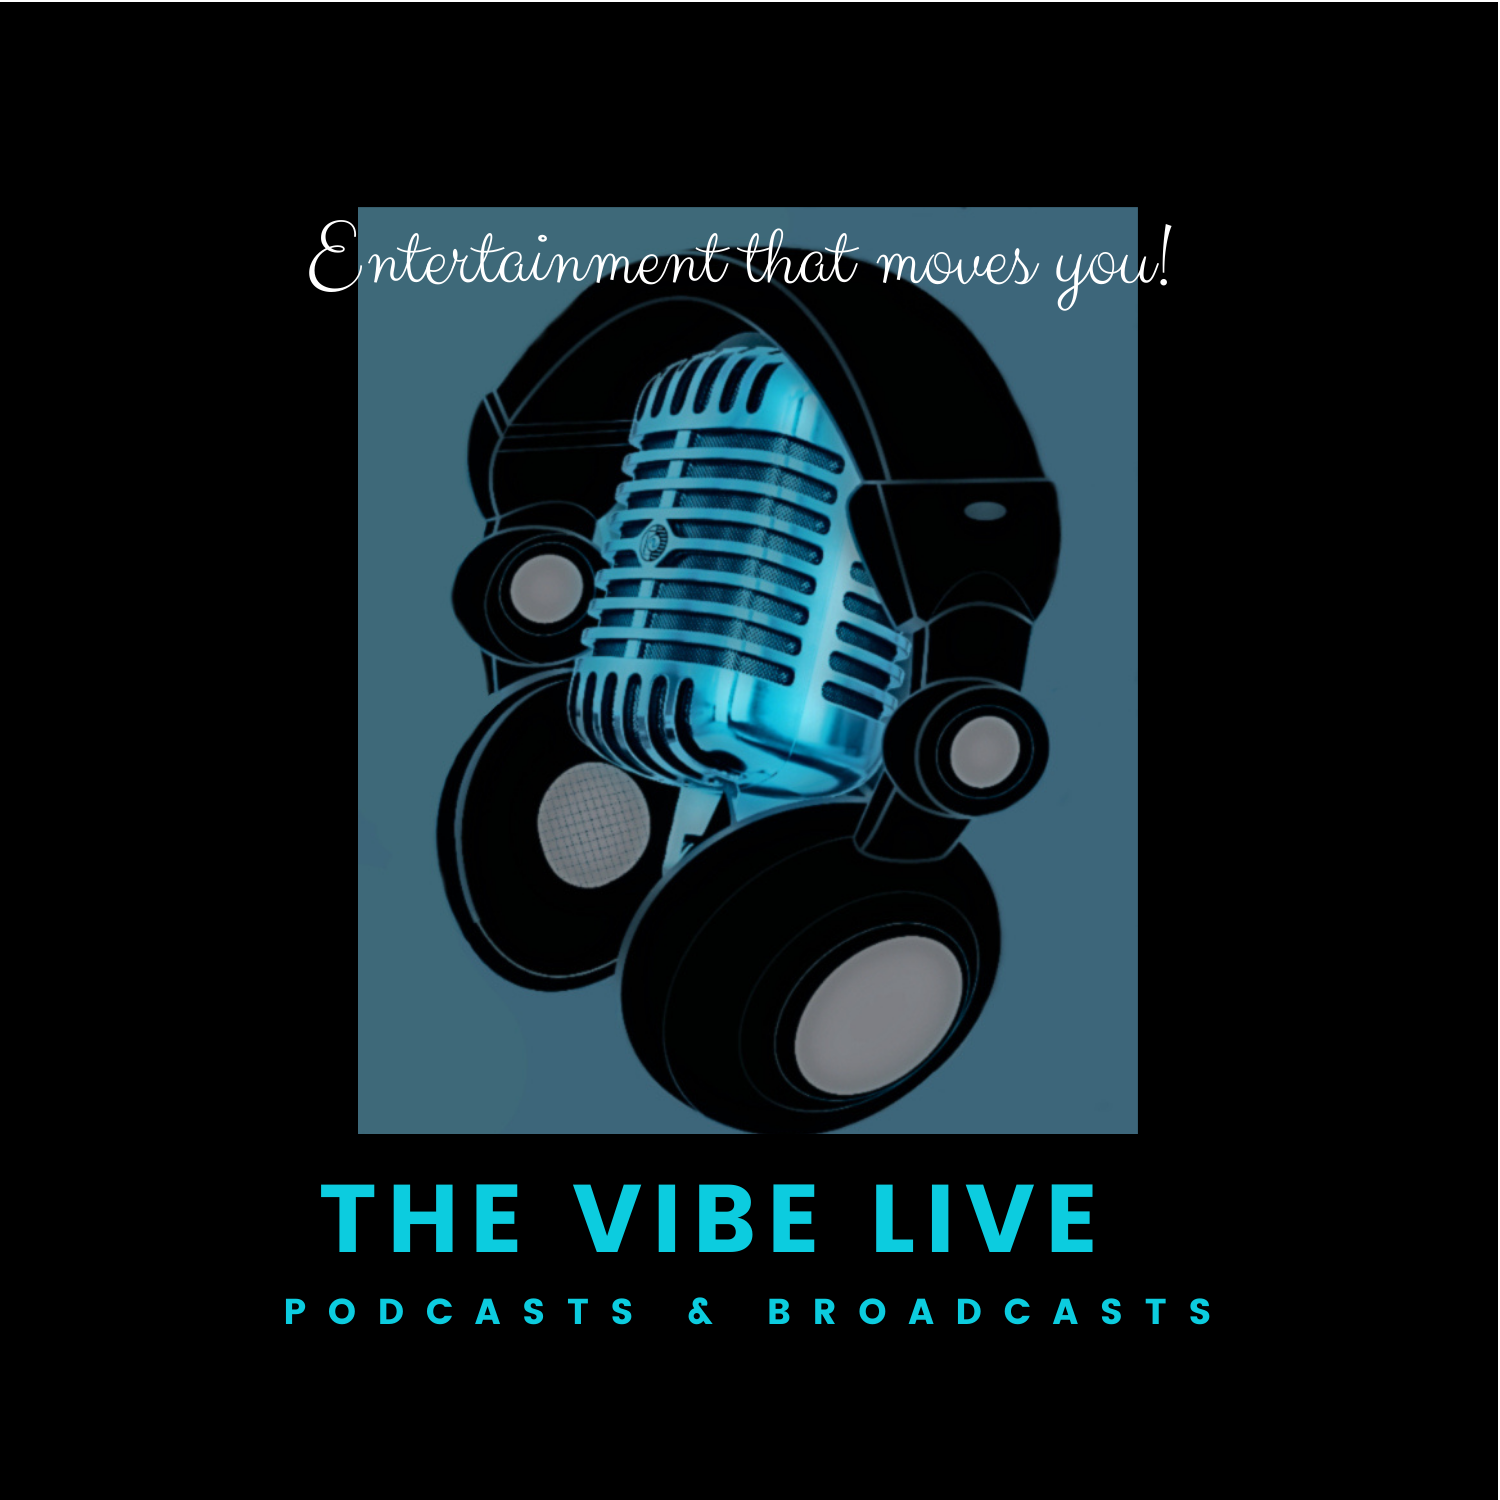 The Vibe Live